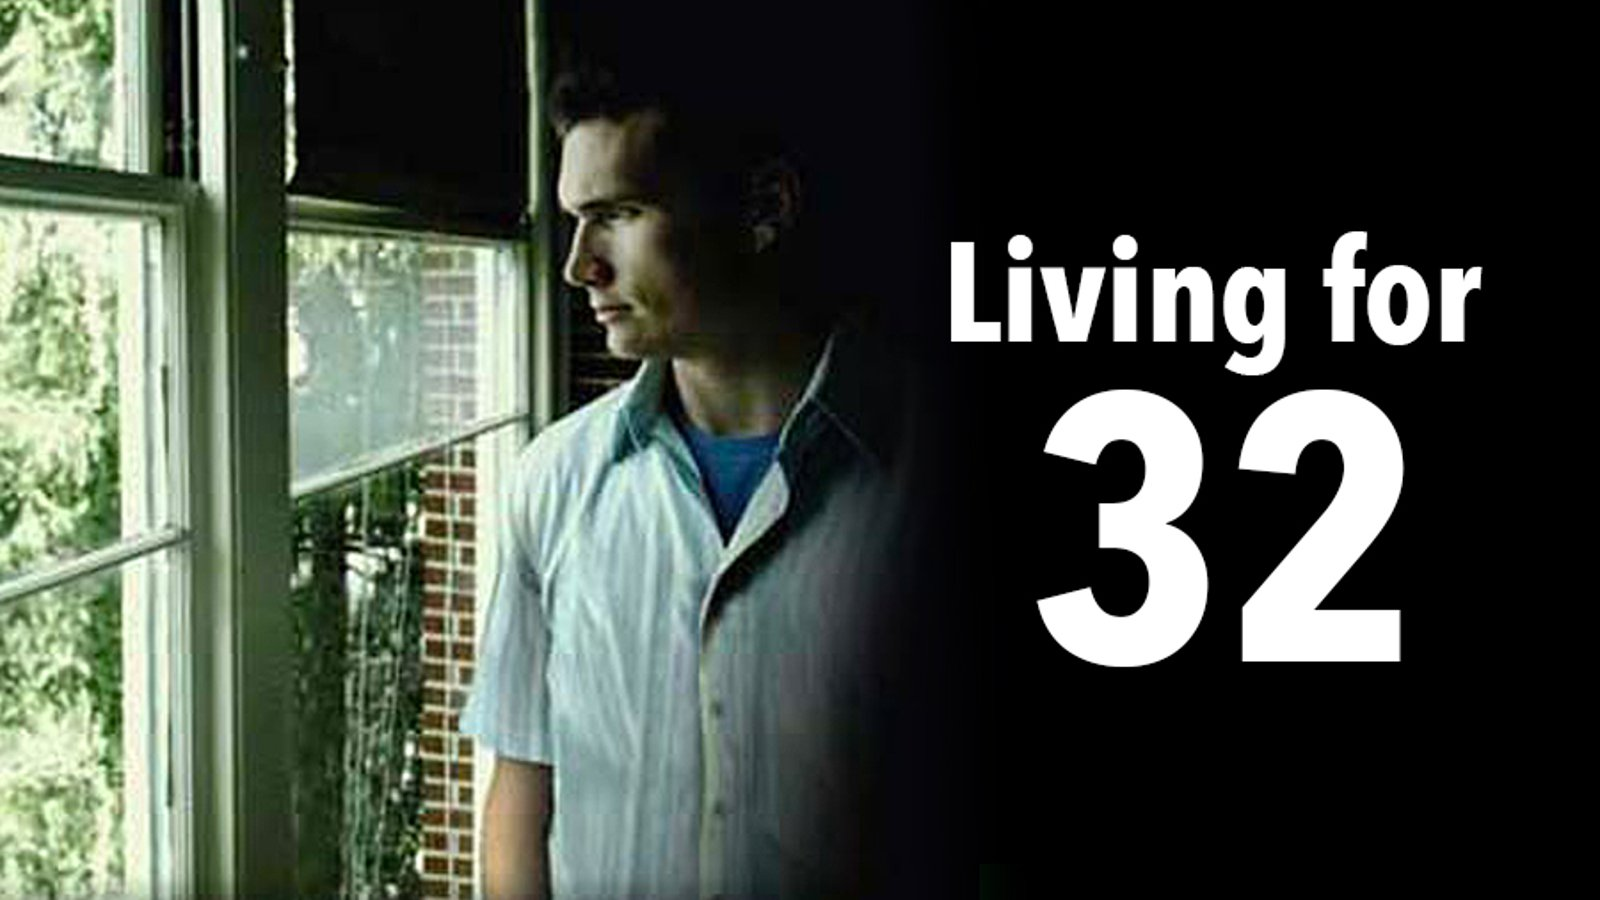 Living For 32 - Searching for Solutions to Gun Violence